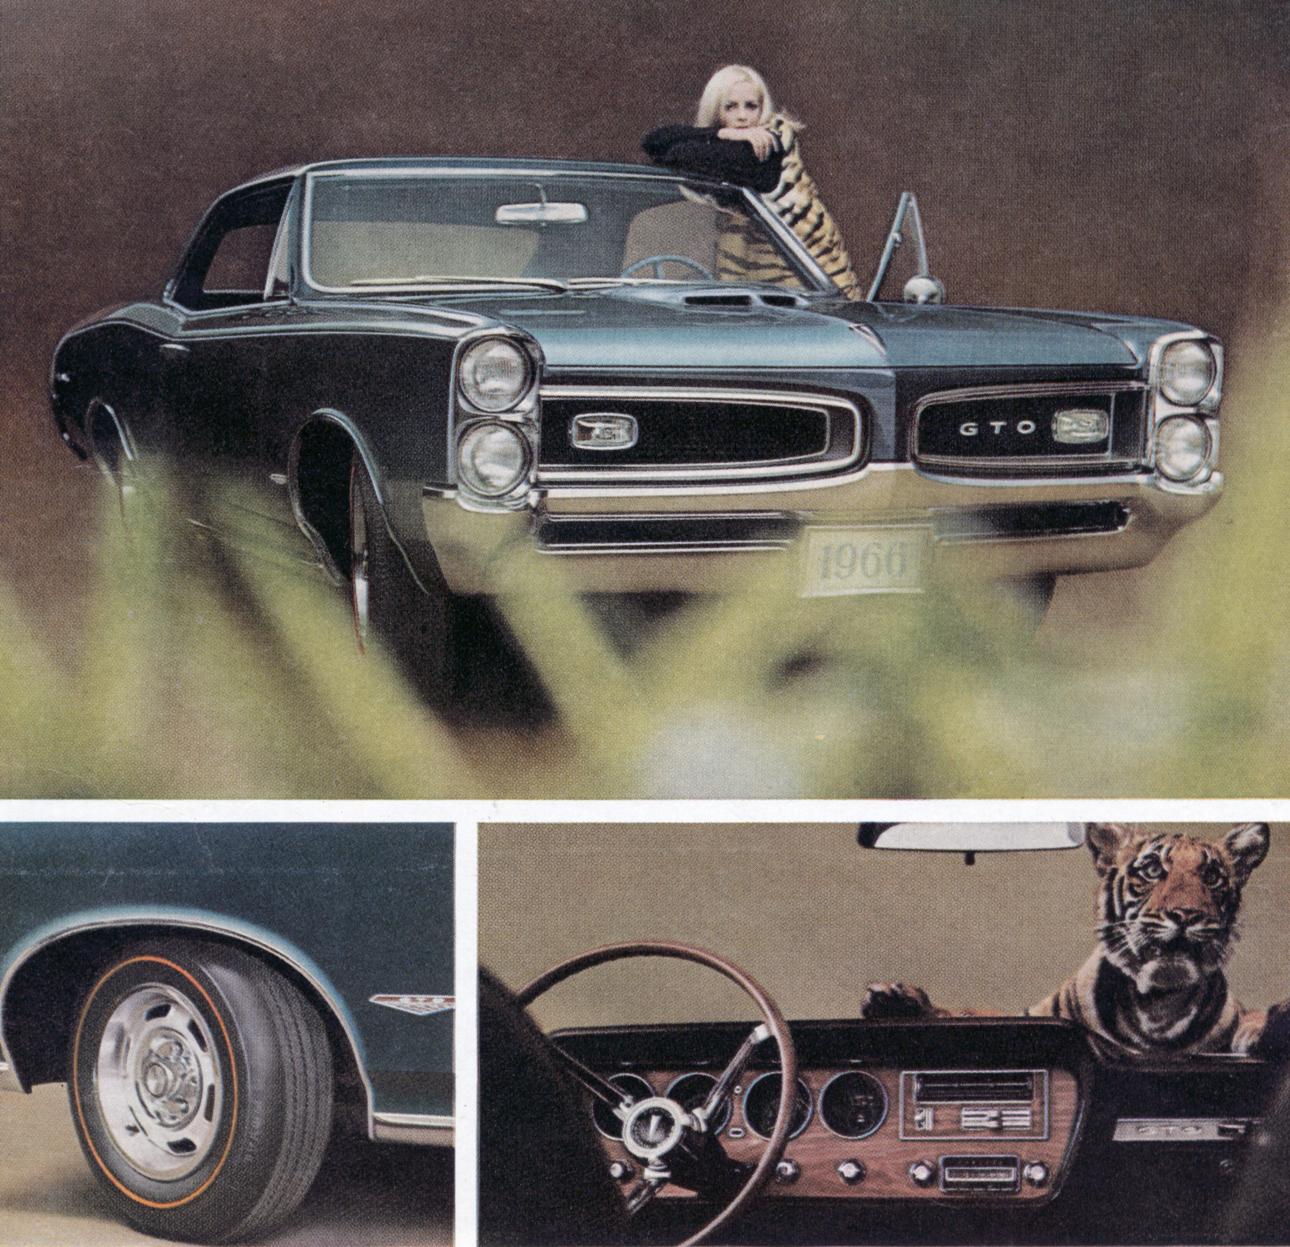 Promofile Crouching Tiger Hidden Burnoutsgto Ads In The 1960s 1960 Pontiac Catalina Wiring Diagrams Ironically These Were Most Aggressive Ever Devised For Gto Everything That Followed Was Pale And Tame By Comparison